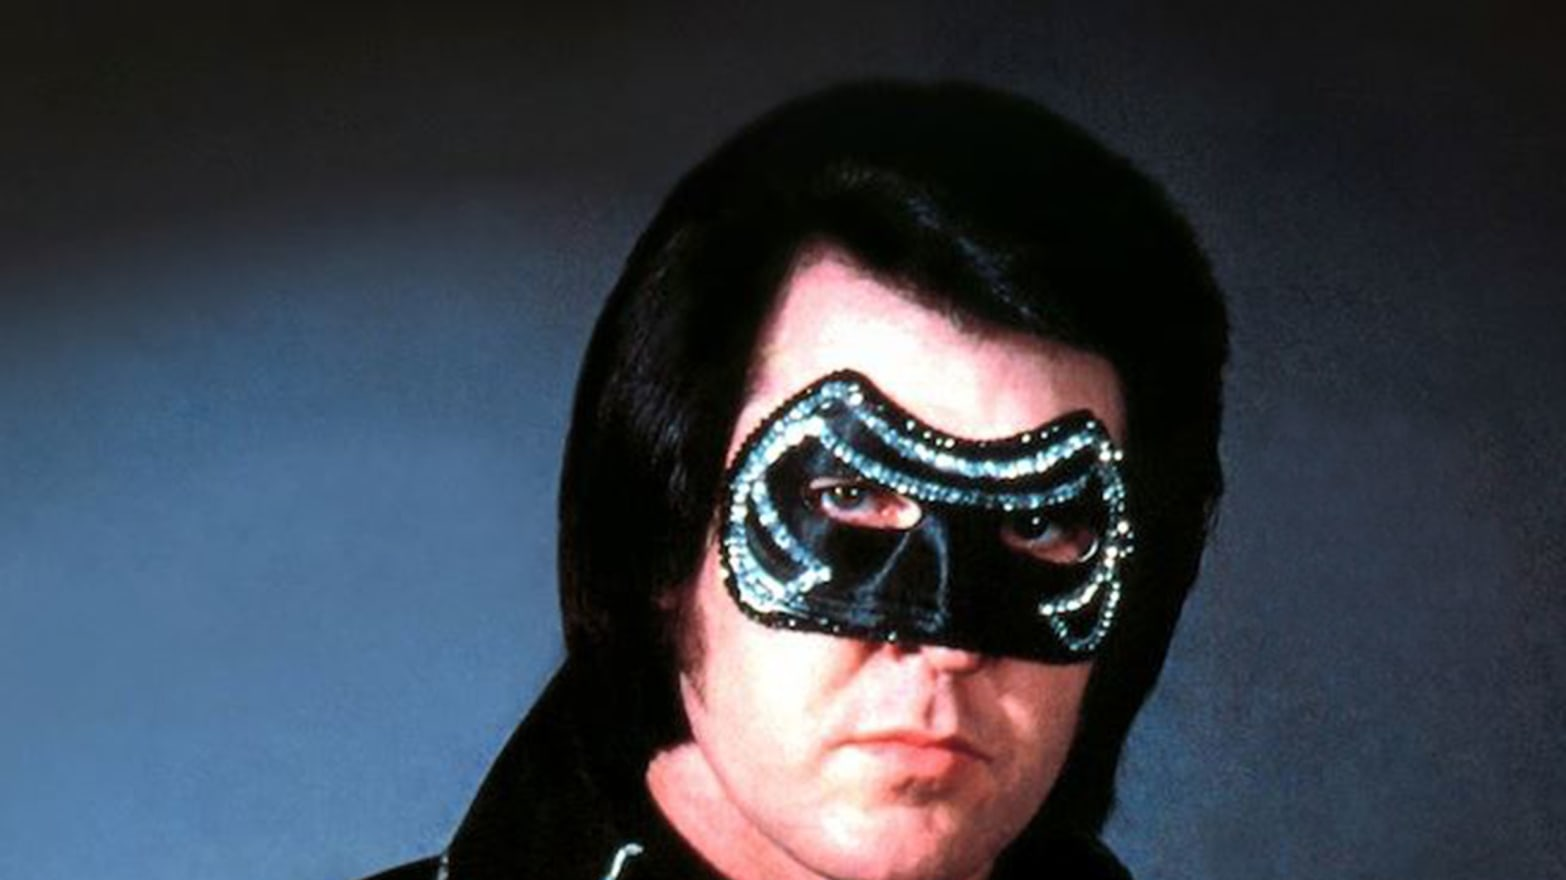 The Story of Orion: Elvis Presley's Mysterious, Masked Doppelganger Who Hoodwinked the World